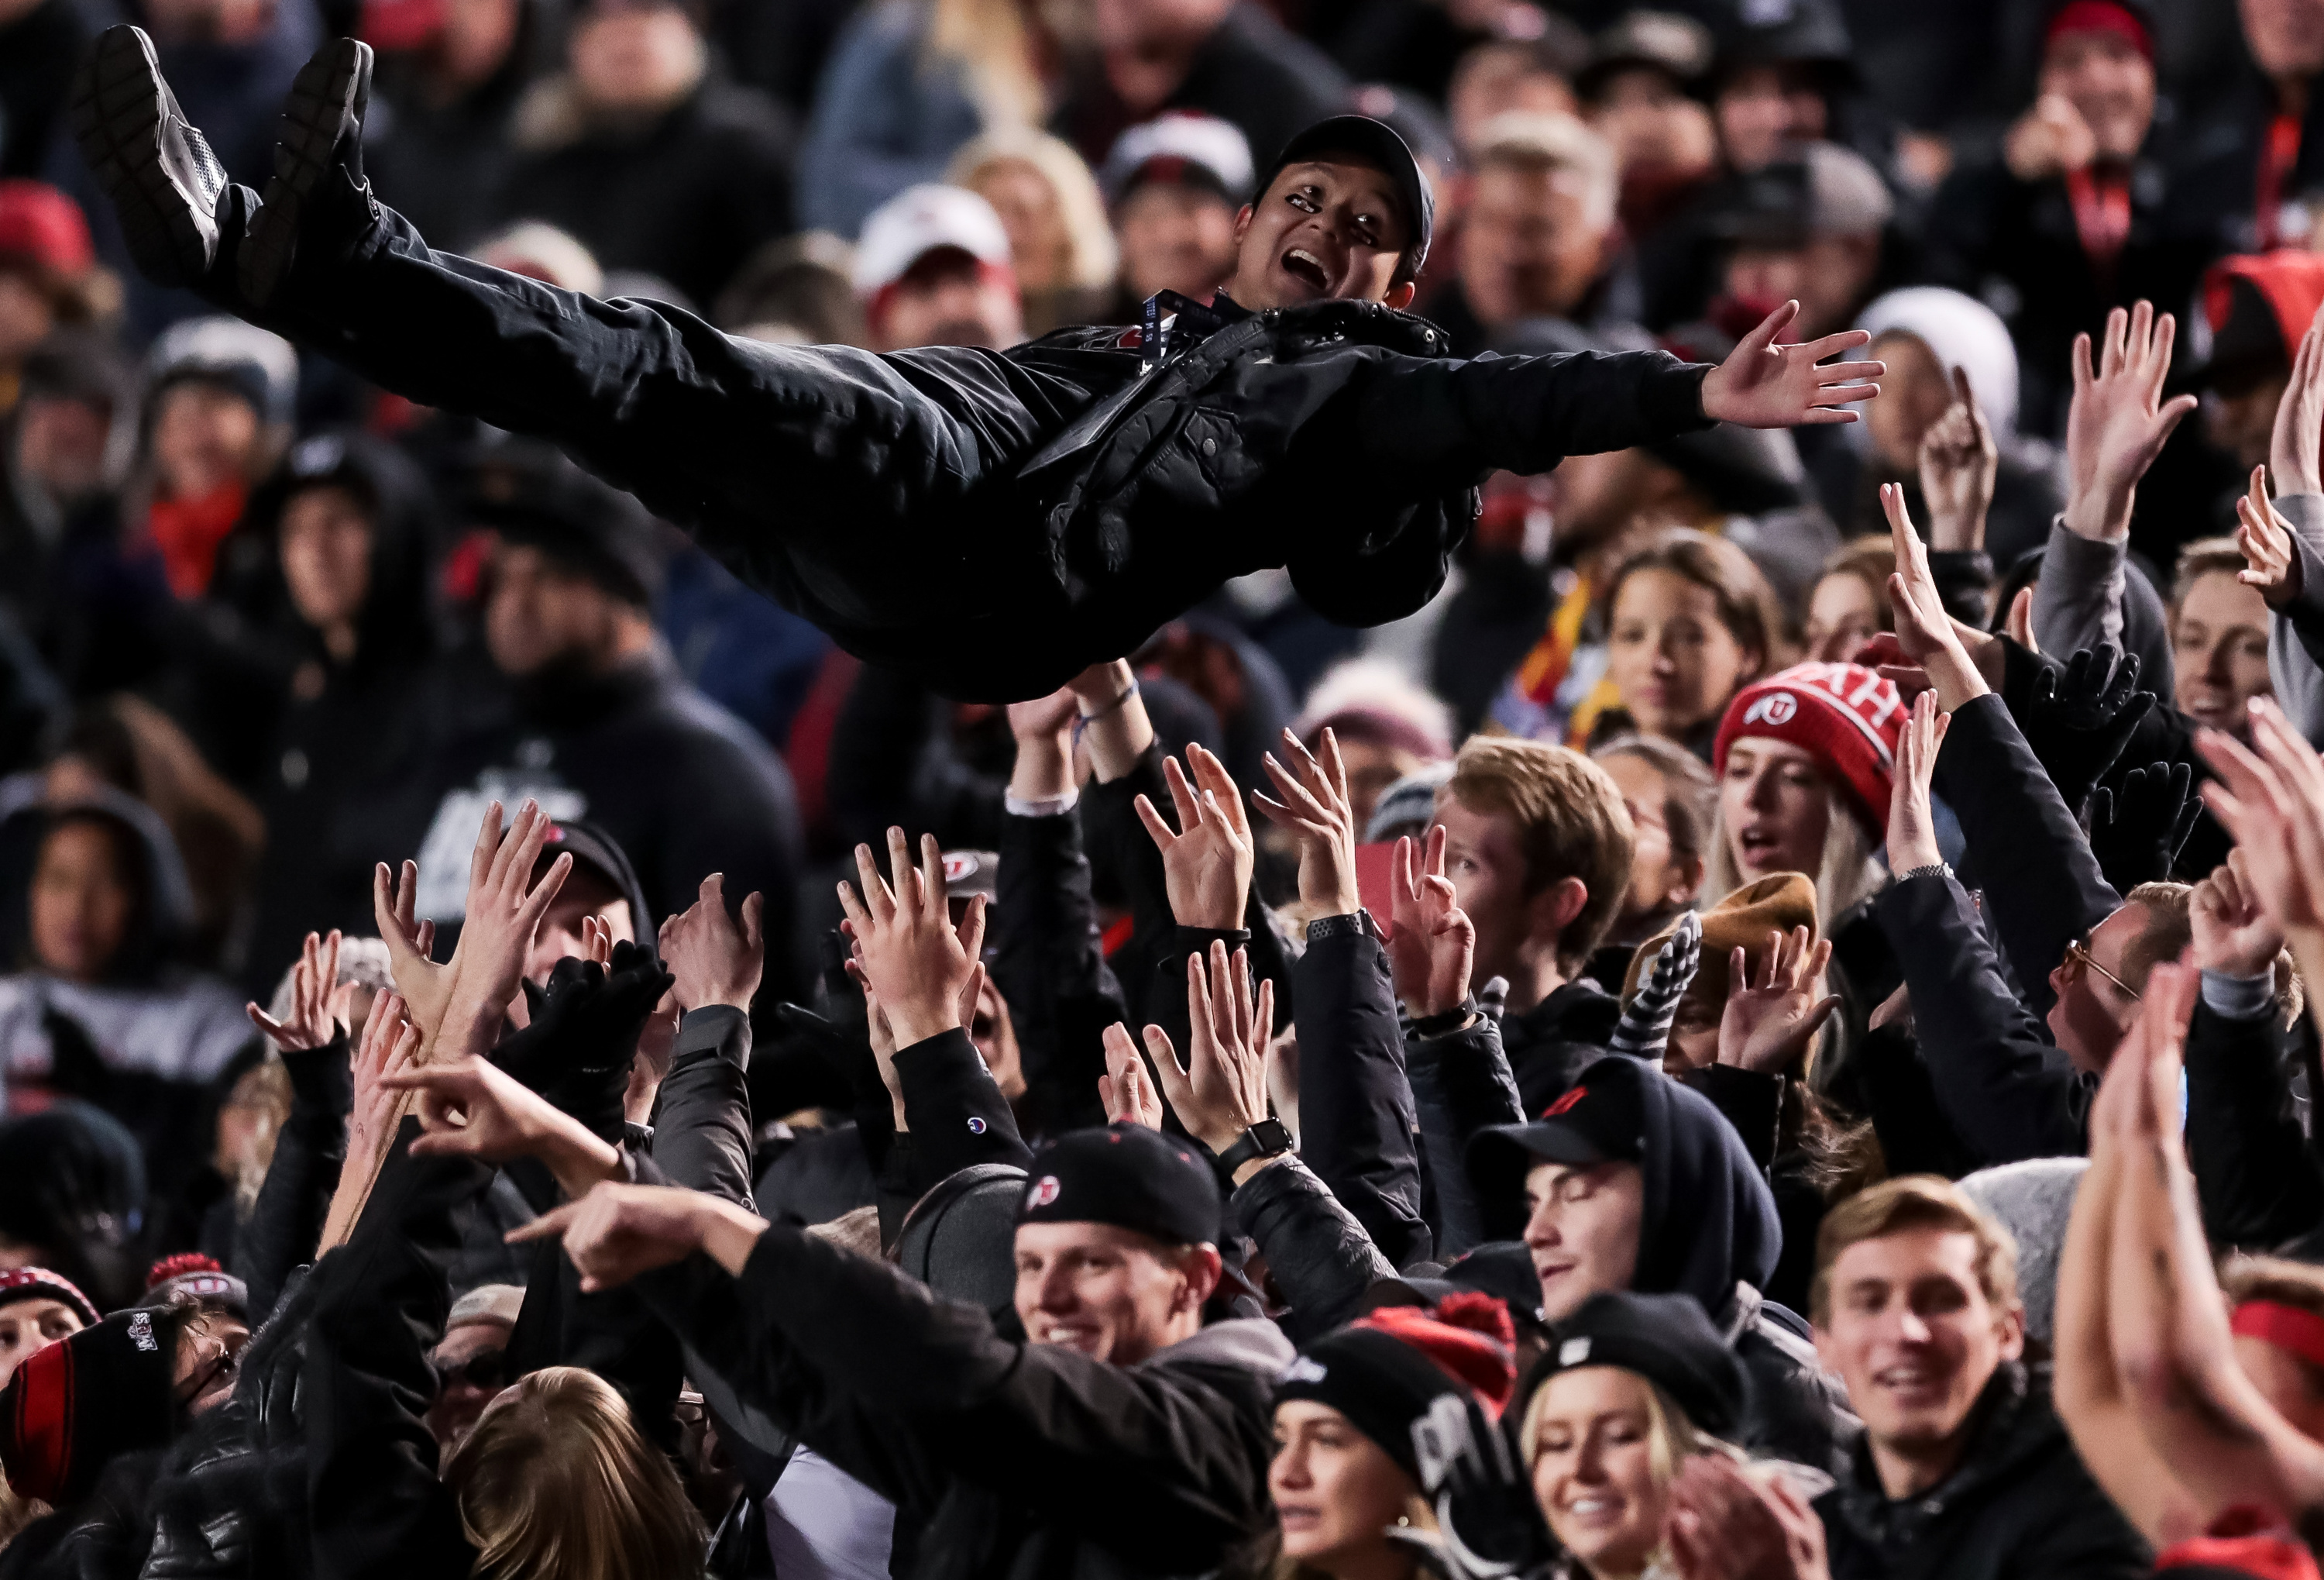 Utah fans celebrate after a touchdown during the game against the California Golden Bears at Rice-Eccles Stadium in Salt Lake City on Saturday, Oct. 26, 2019.